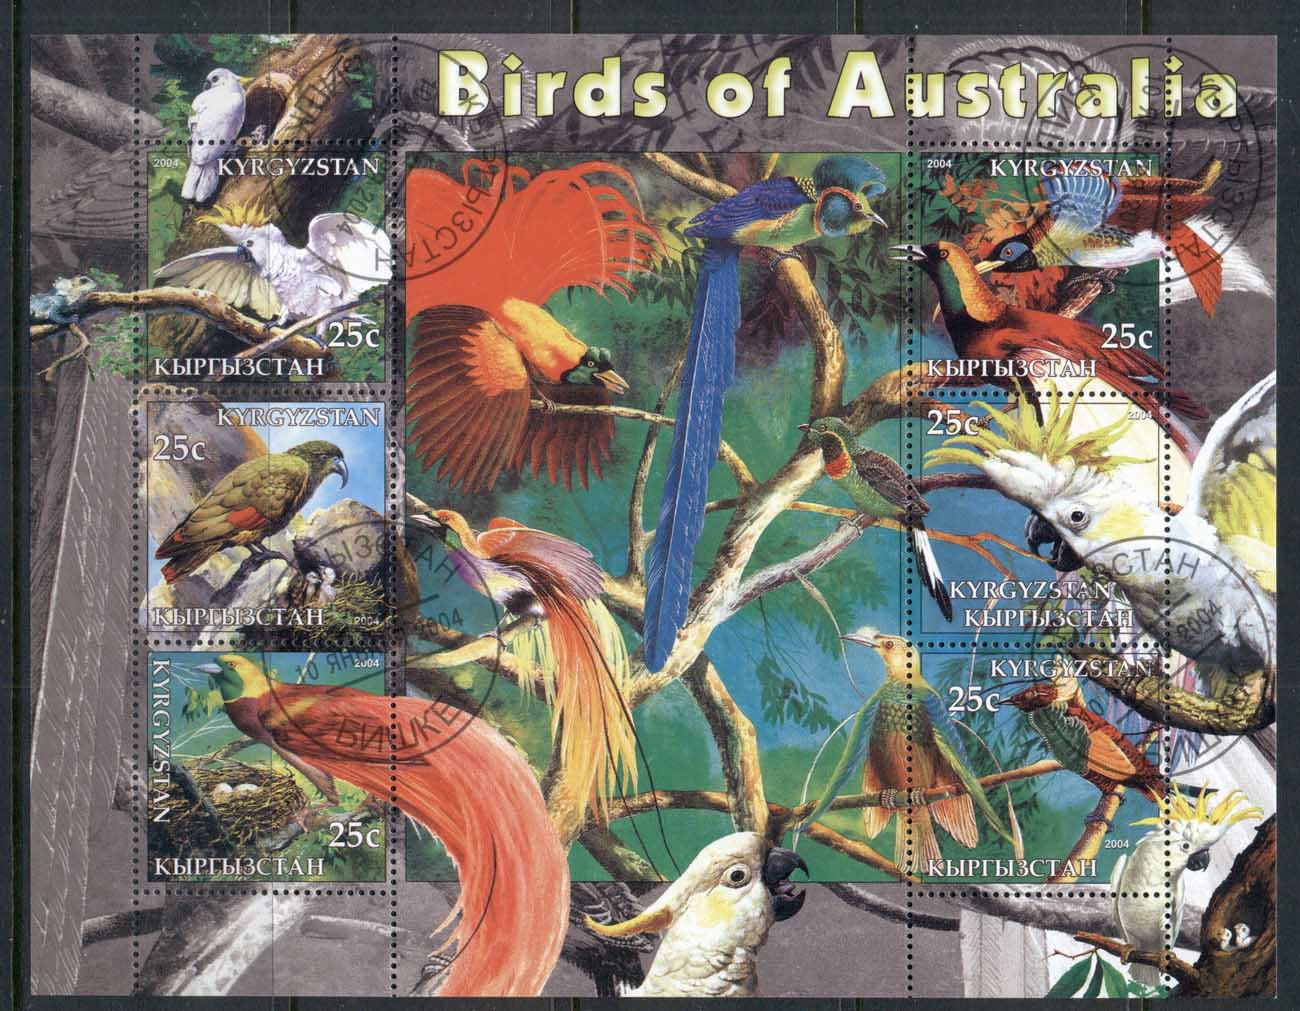 Kyrgystan 2004 Birds of Australia MS CTO